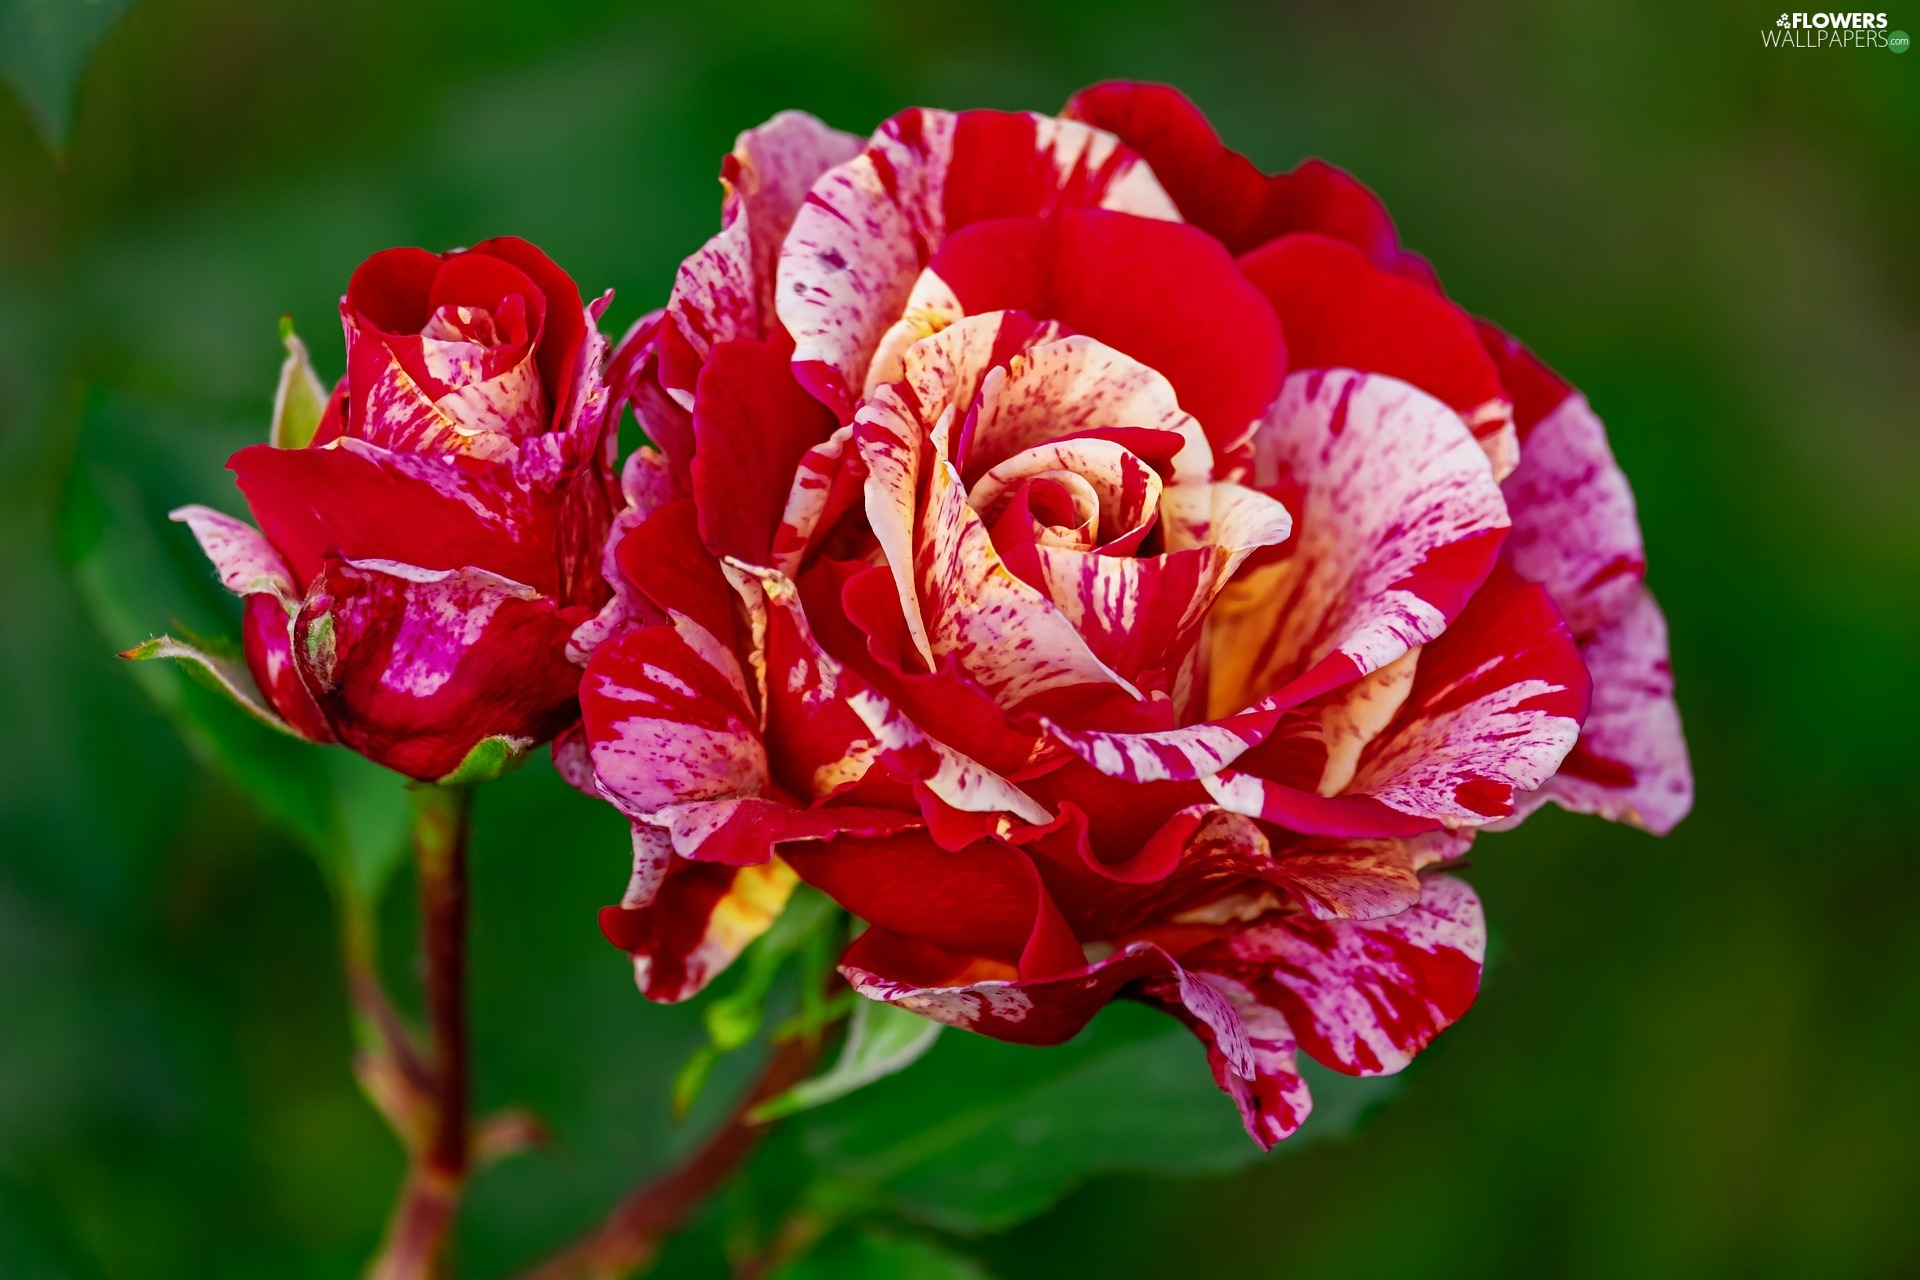 roses, bud, developed, Red-Yellow